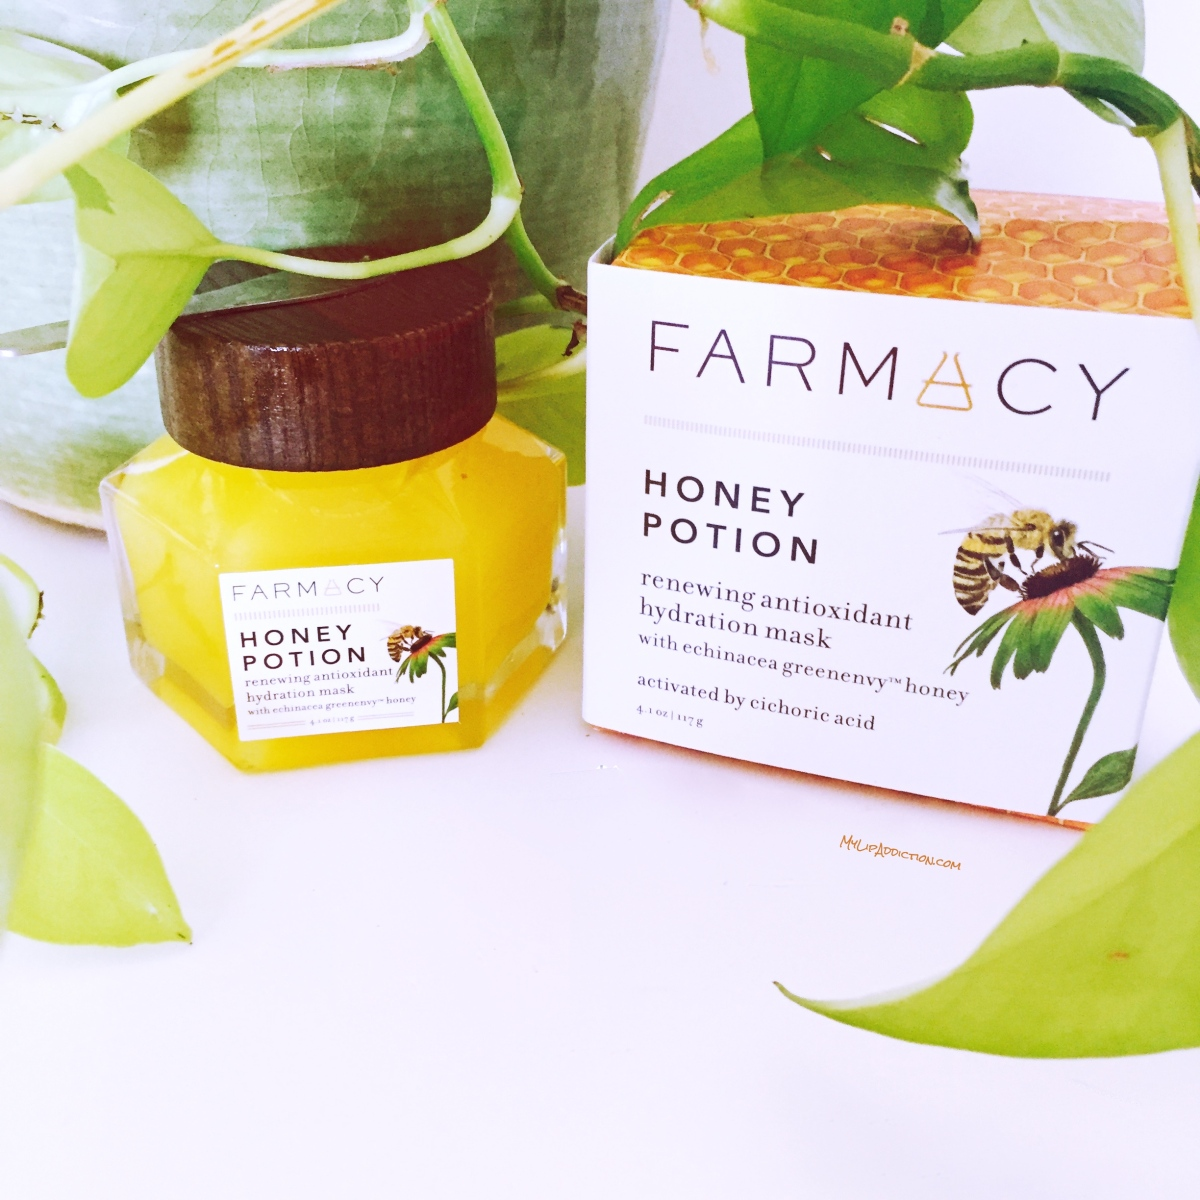 Farmacy Beauty- Honey Potion - A Review - MyLipAddiction.com